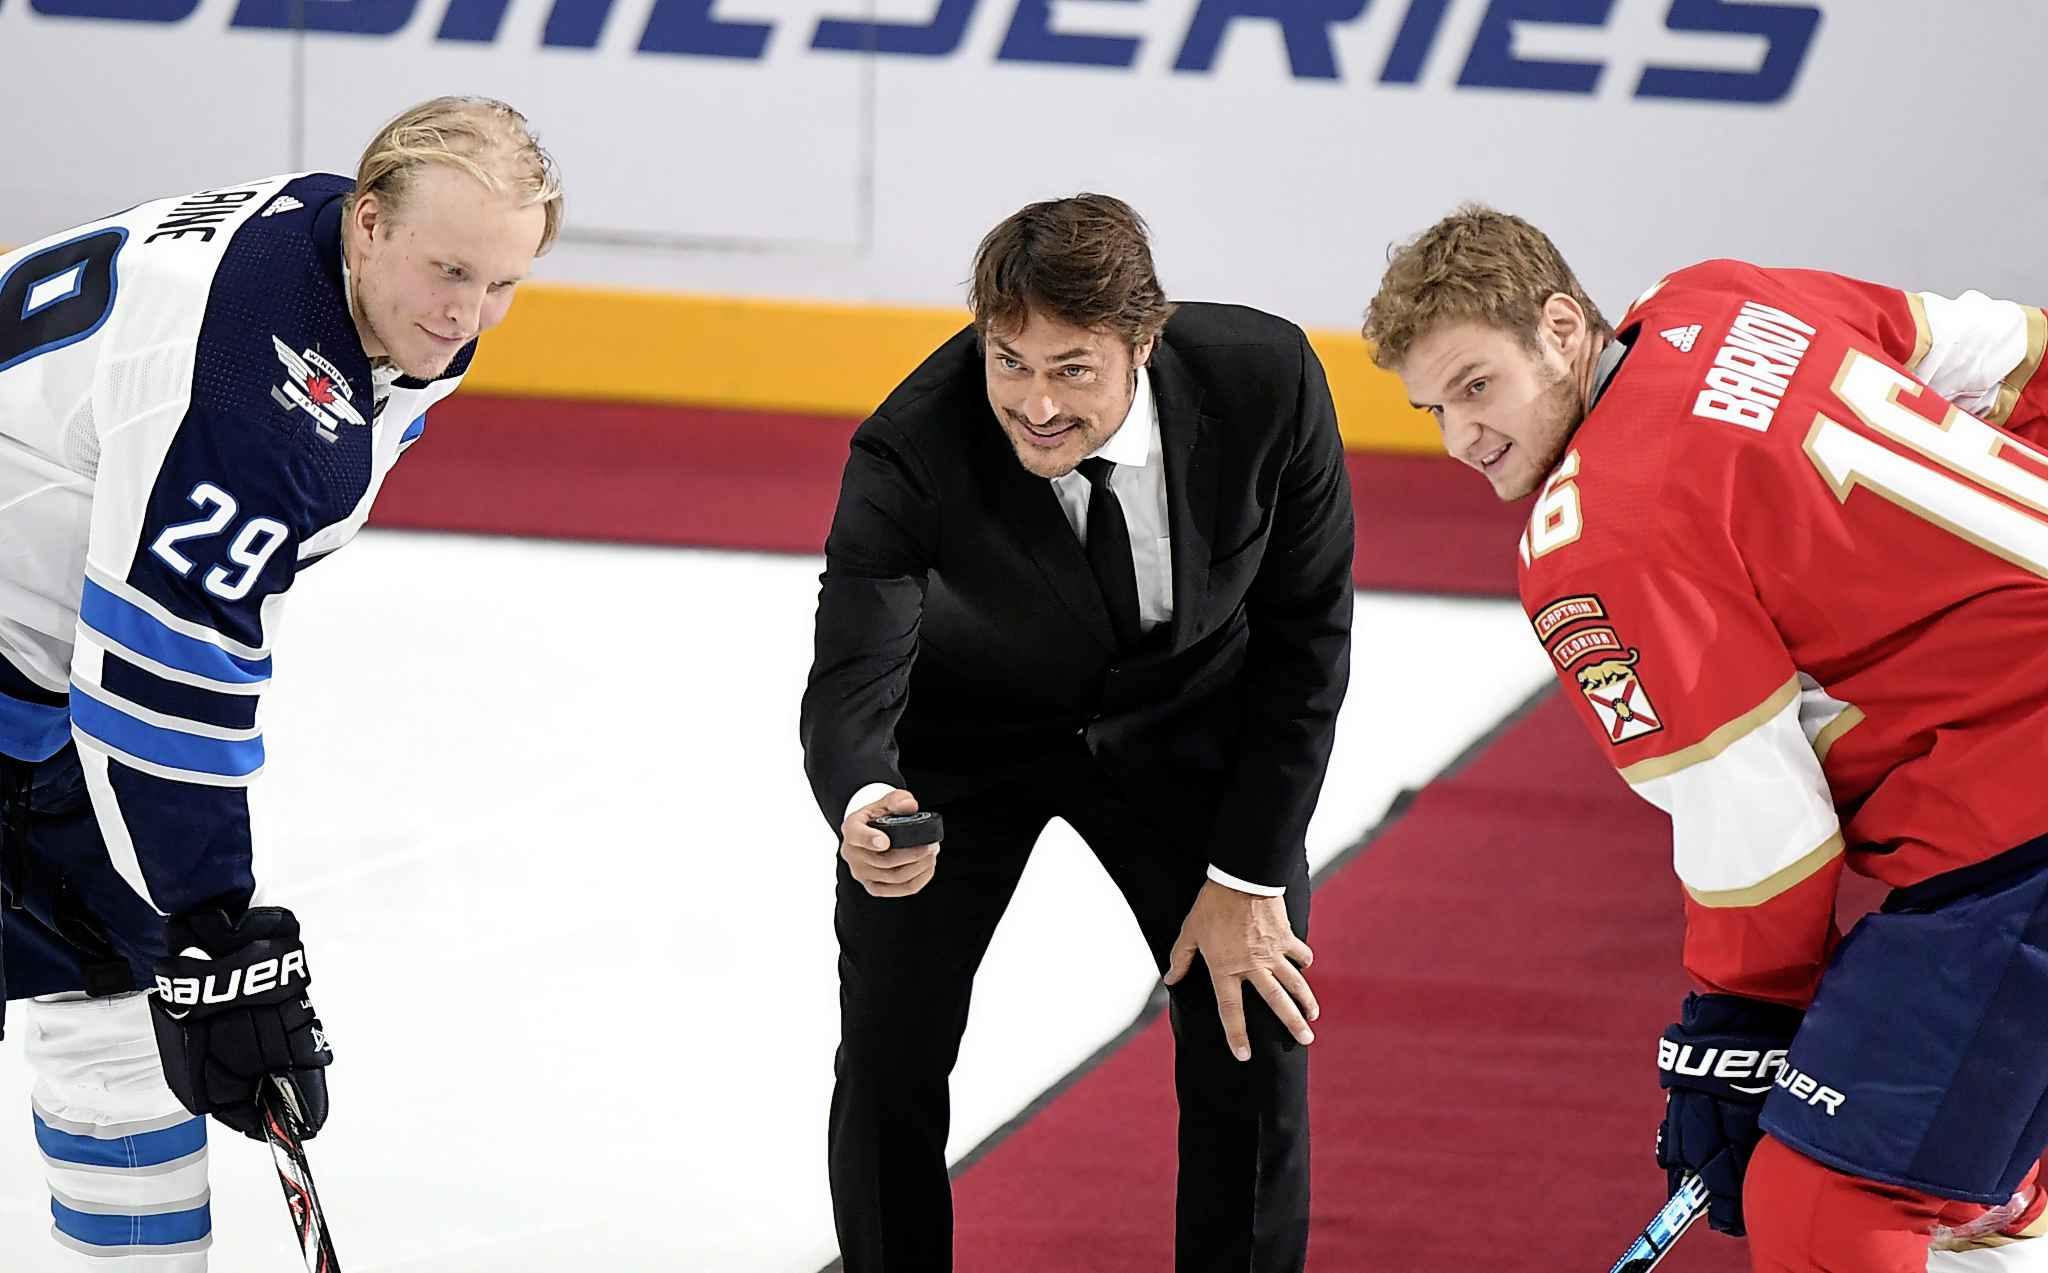 Retired NHL star Teemu Selanne drops the puck during a ceremonial faceoff between Patrik Laine, left, of the Winnipeg Jets and Aleksander Barkov of the Florida Panthers prior to the NHL Global Series in Helsinki, Finland on Thursday.